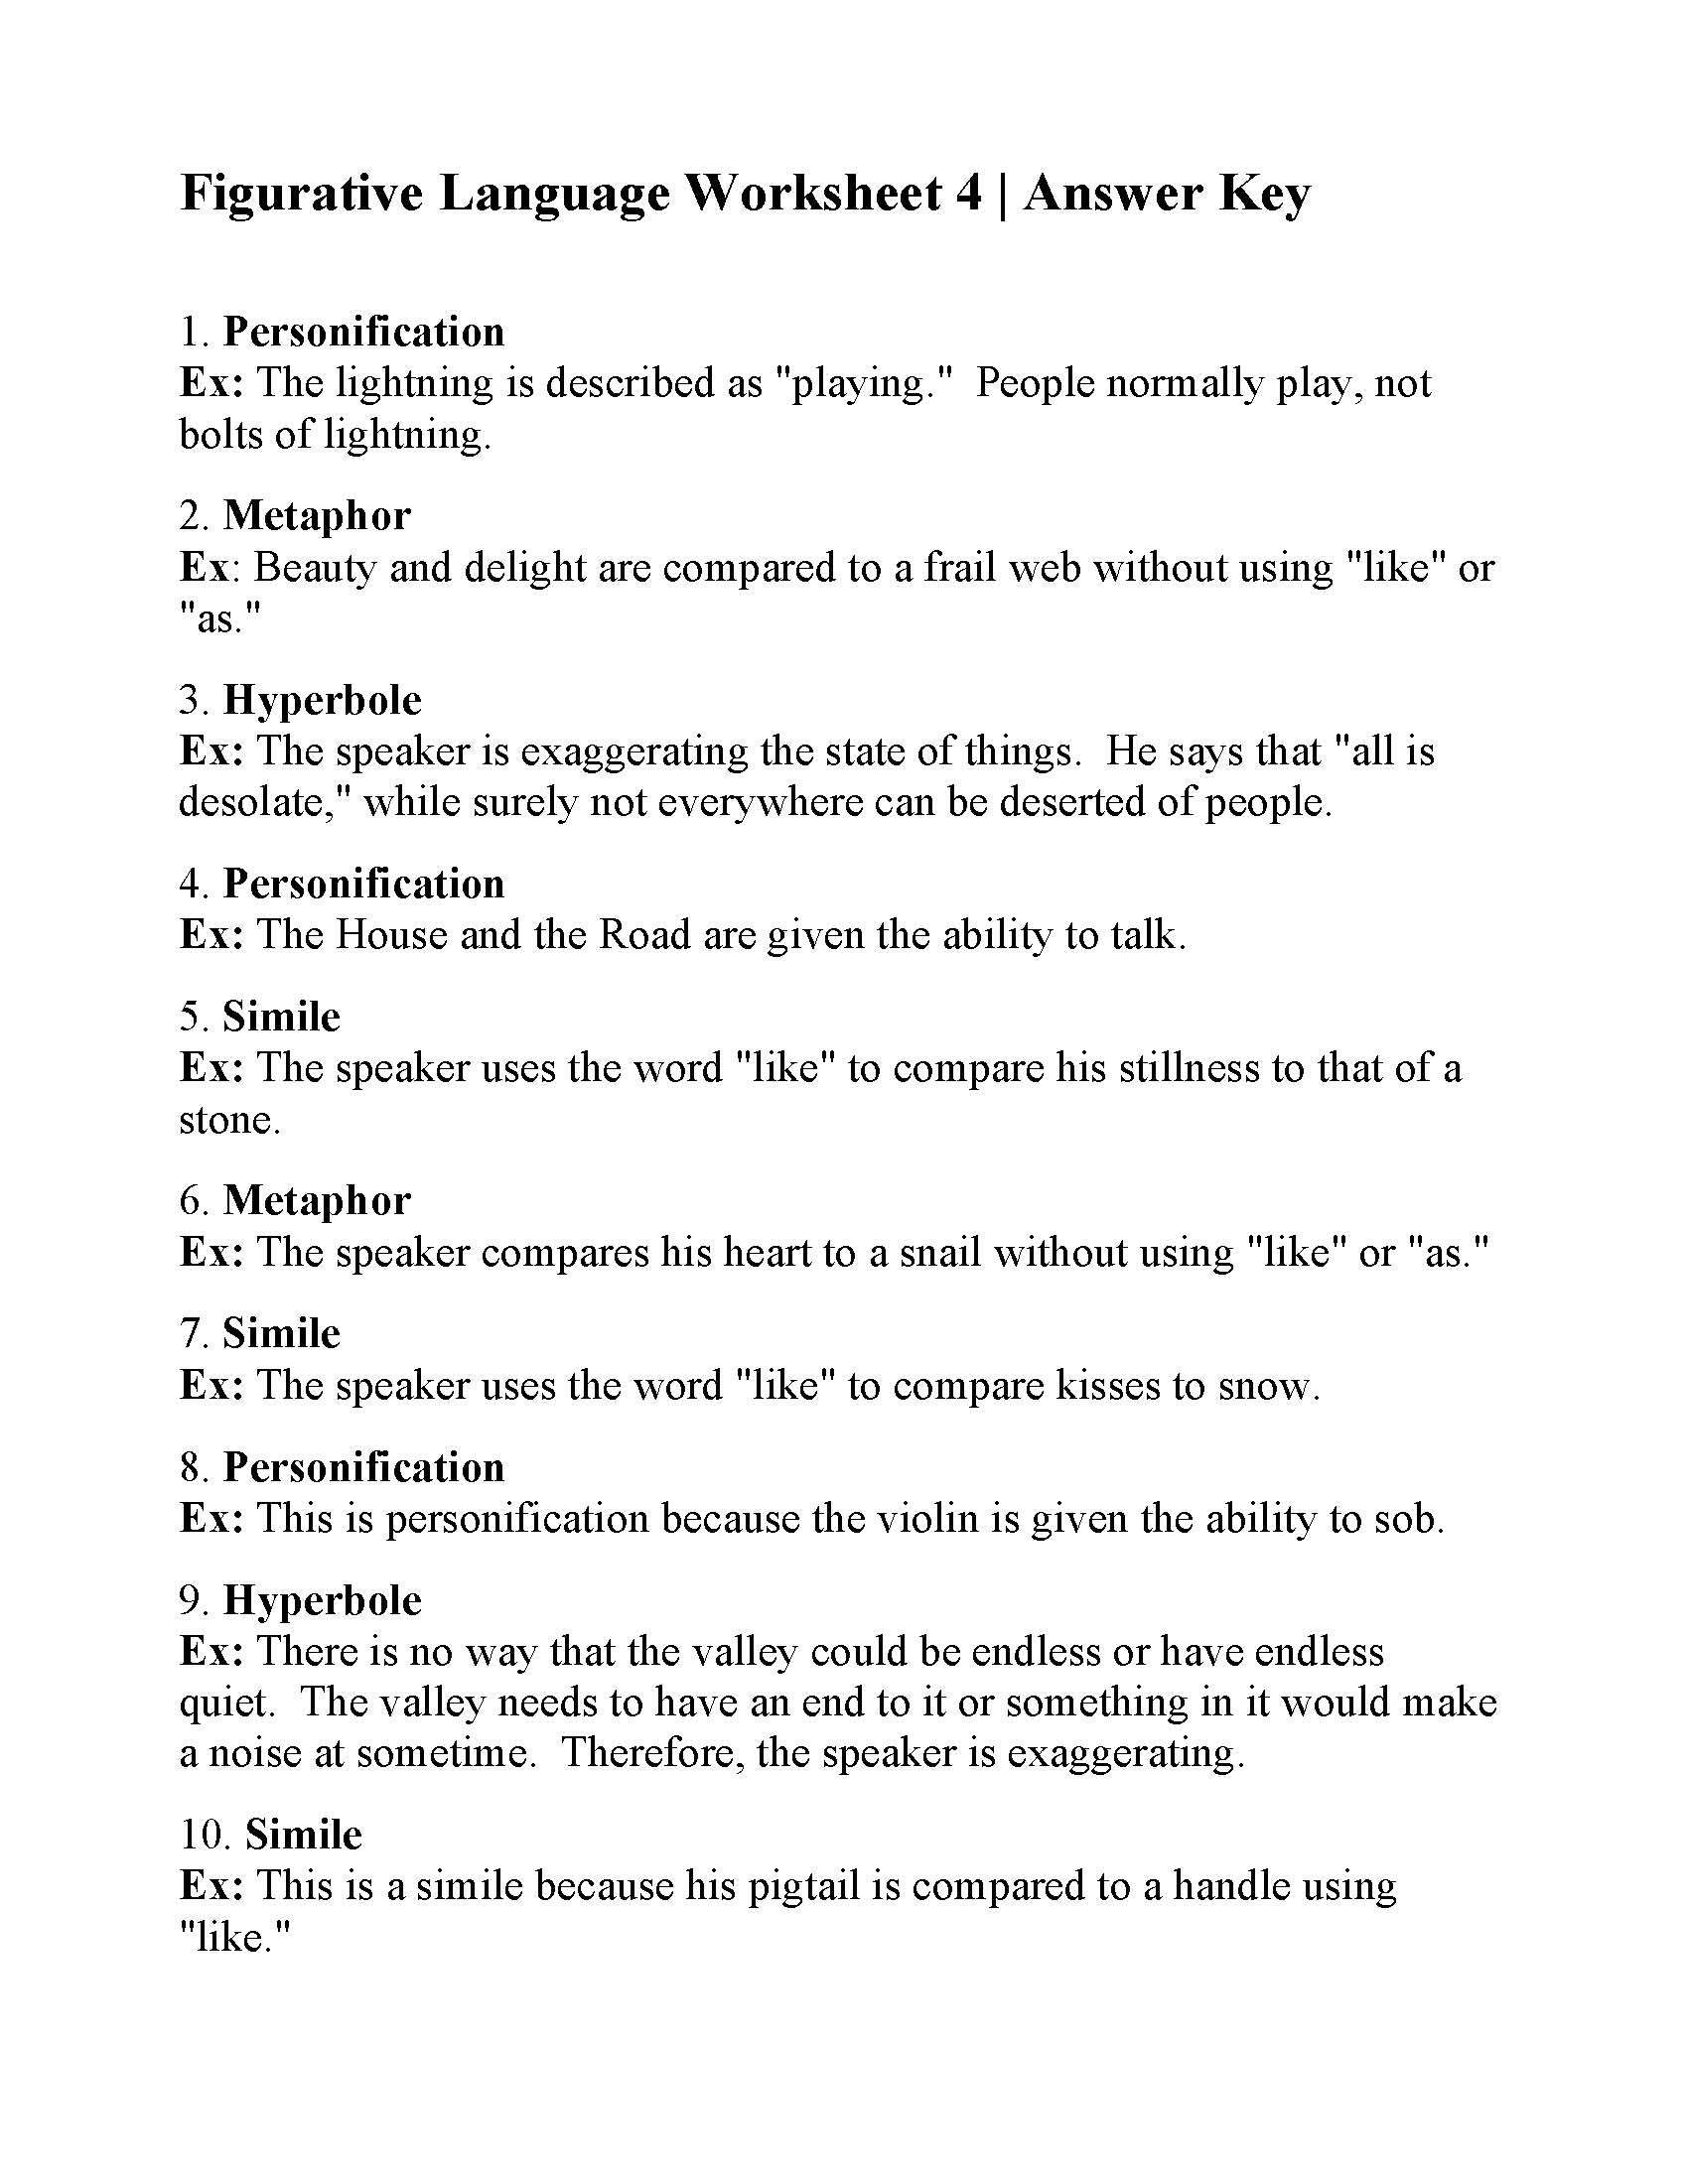 Figurative Language Worksheet 1